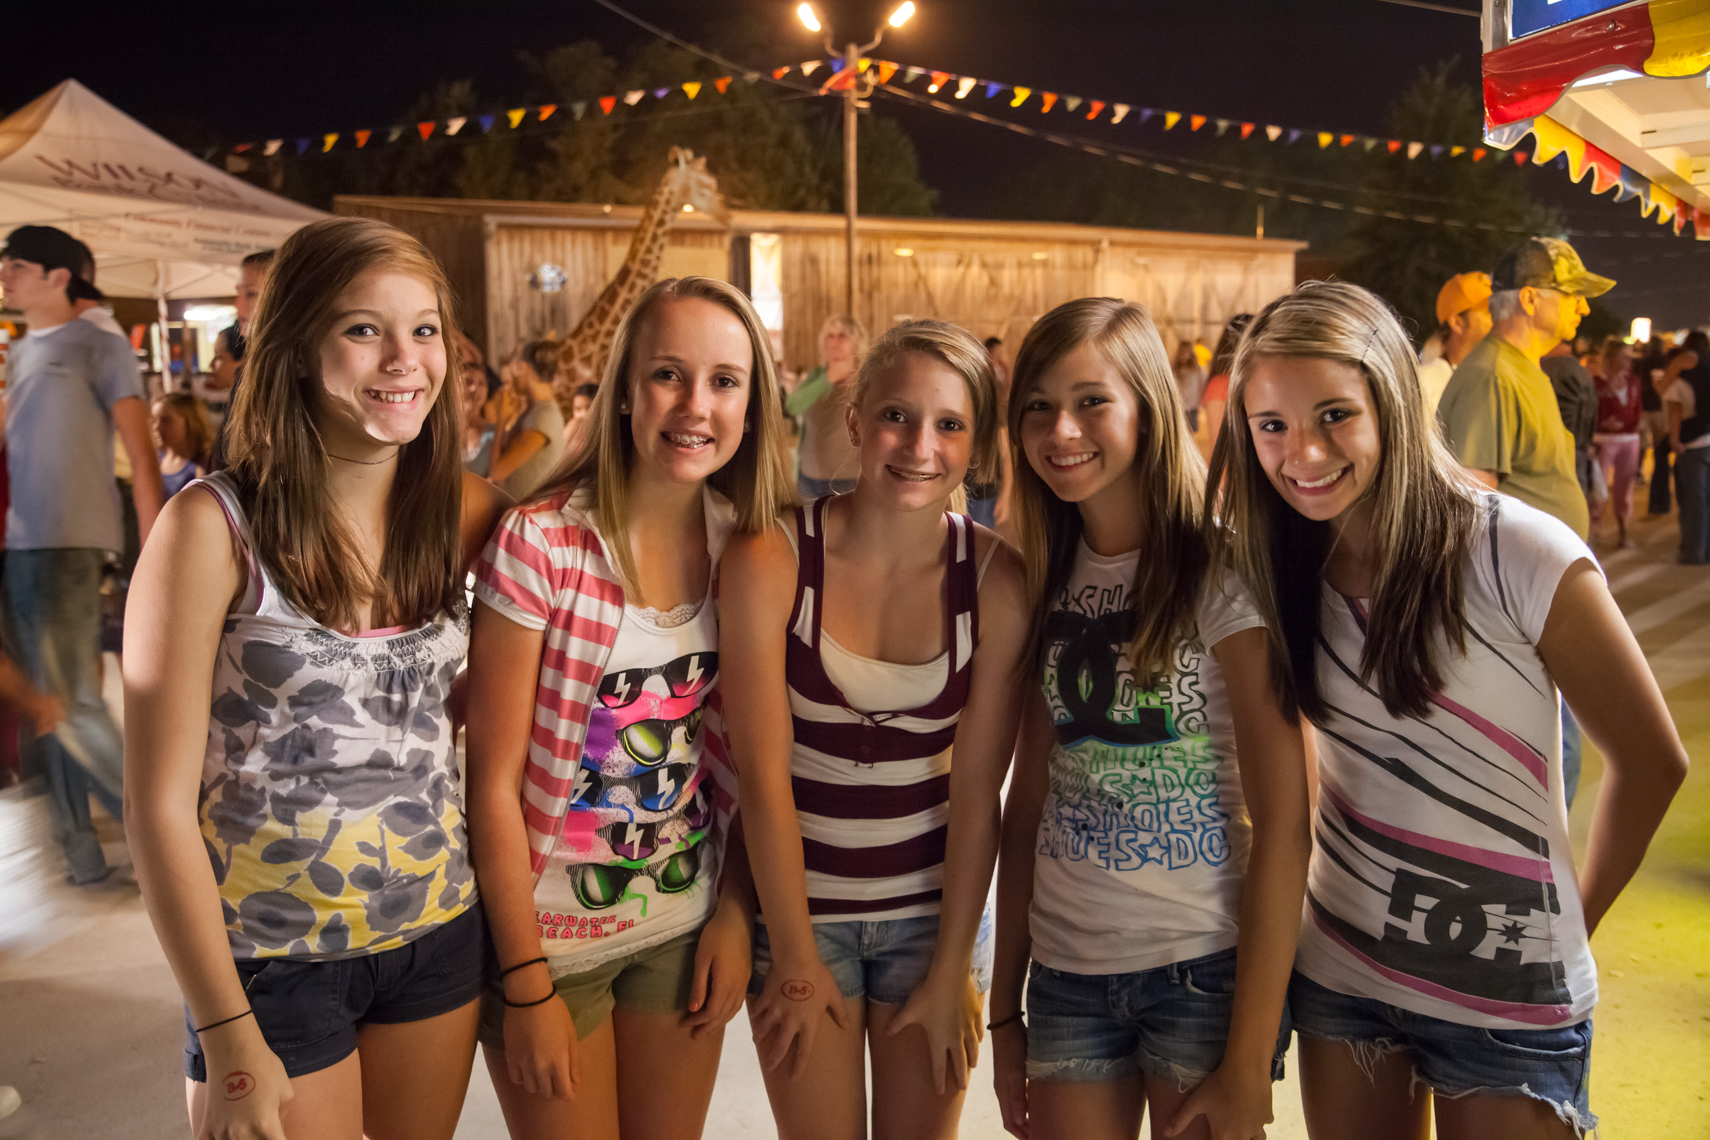 Tween girls, Wilson County Fair, Lebanon, Tennessee, carnival, amusement park, rural south, Documentary, Editorial, Photojournalist in Nashville, Southeast, South, Texas, Atlanta, New Orleans, Chicago, Washington, D.C., Photographer